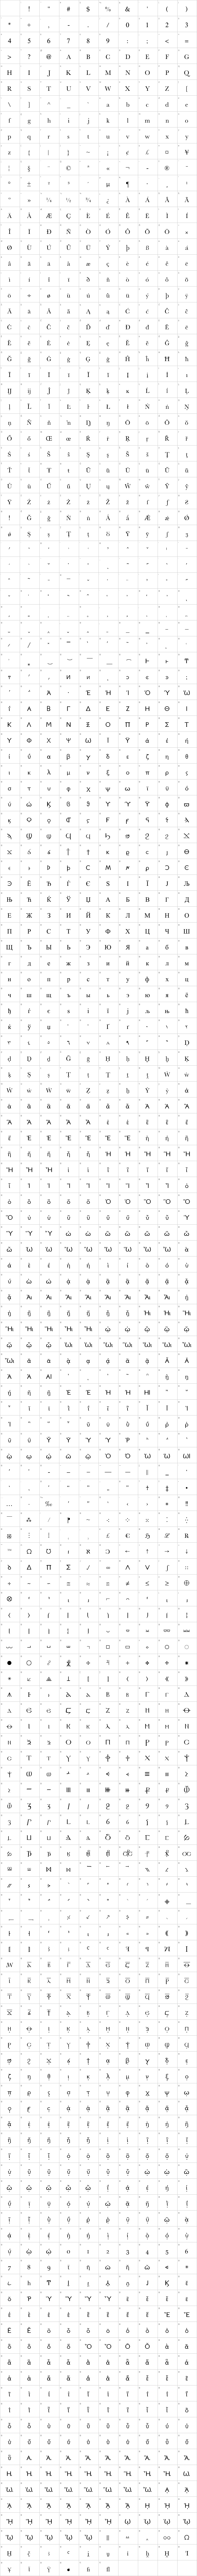 New Athena Unicode Font Free by American Philological Association